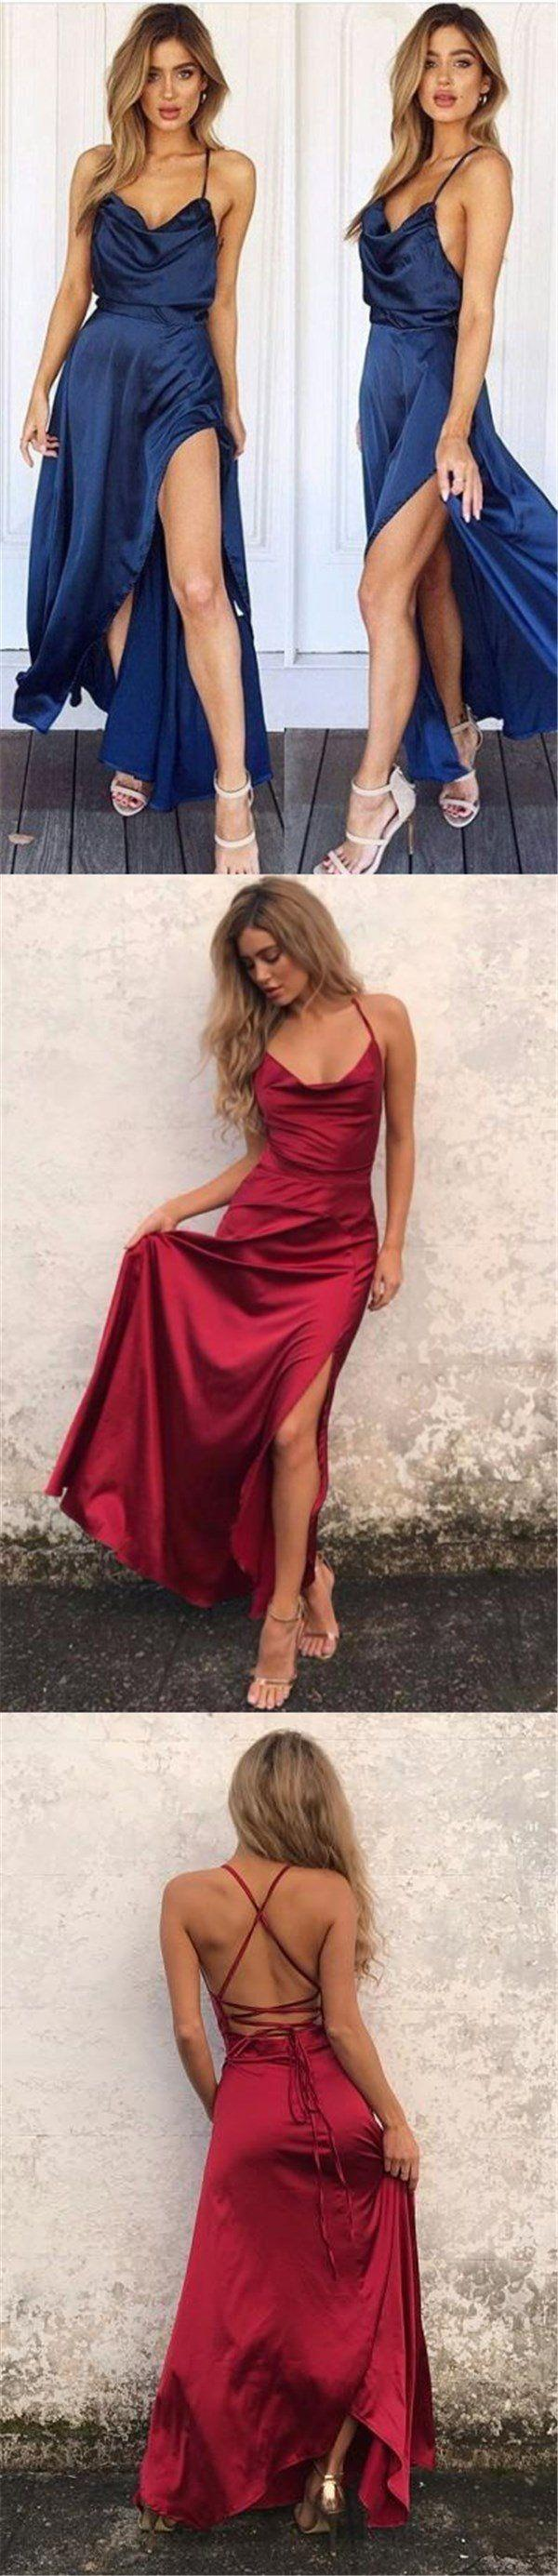 Mariage - Charming Long Red Sexy Prom Dress, Fashion Slit Spaghetti Straps Evening Dresses, Party Dress, PD0318